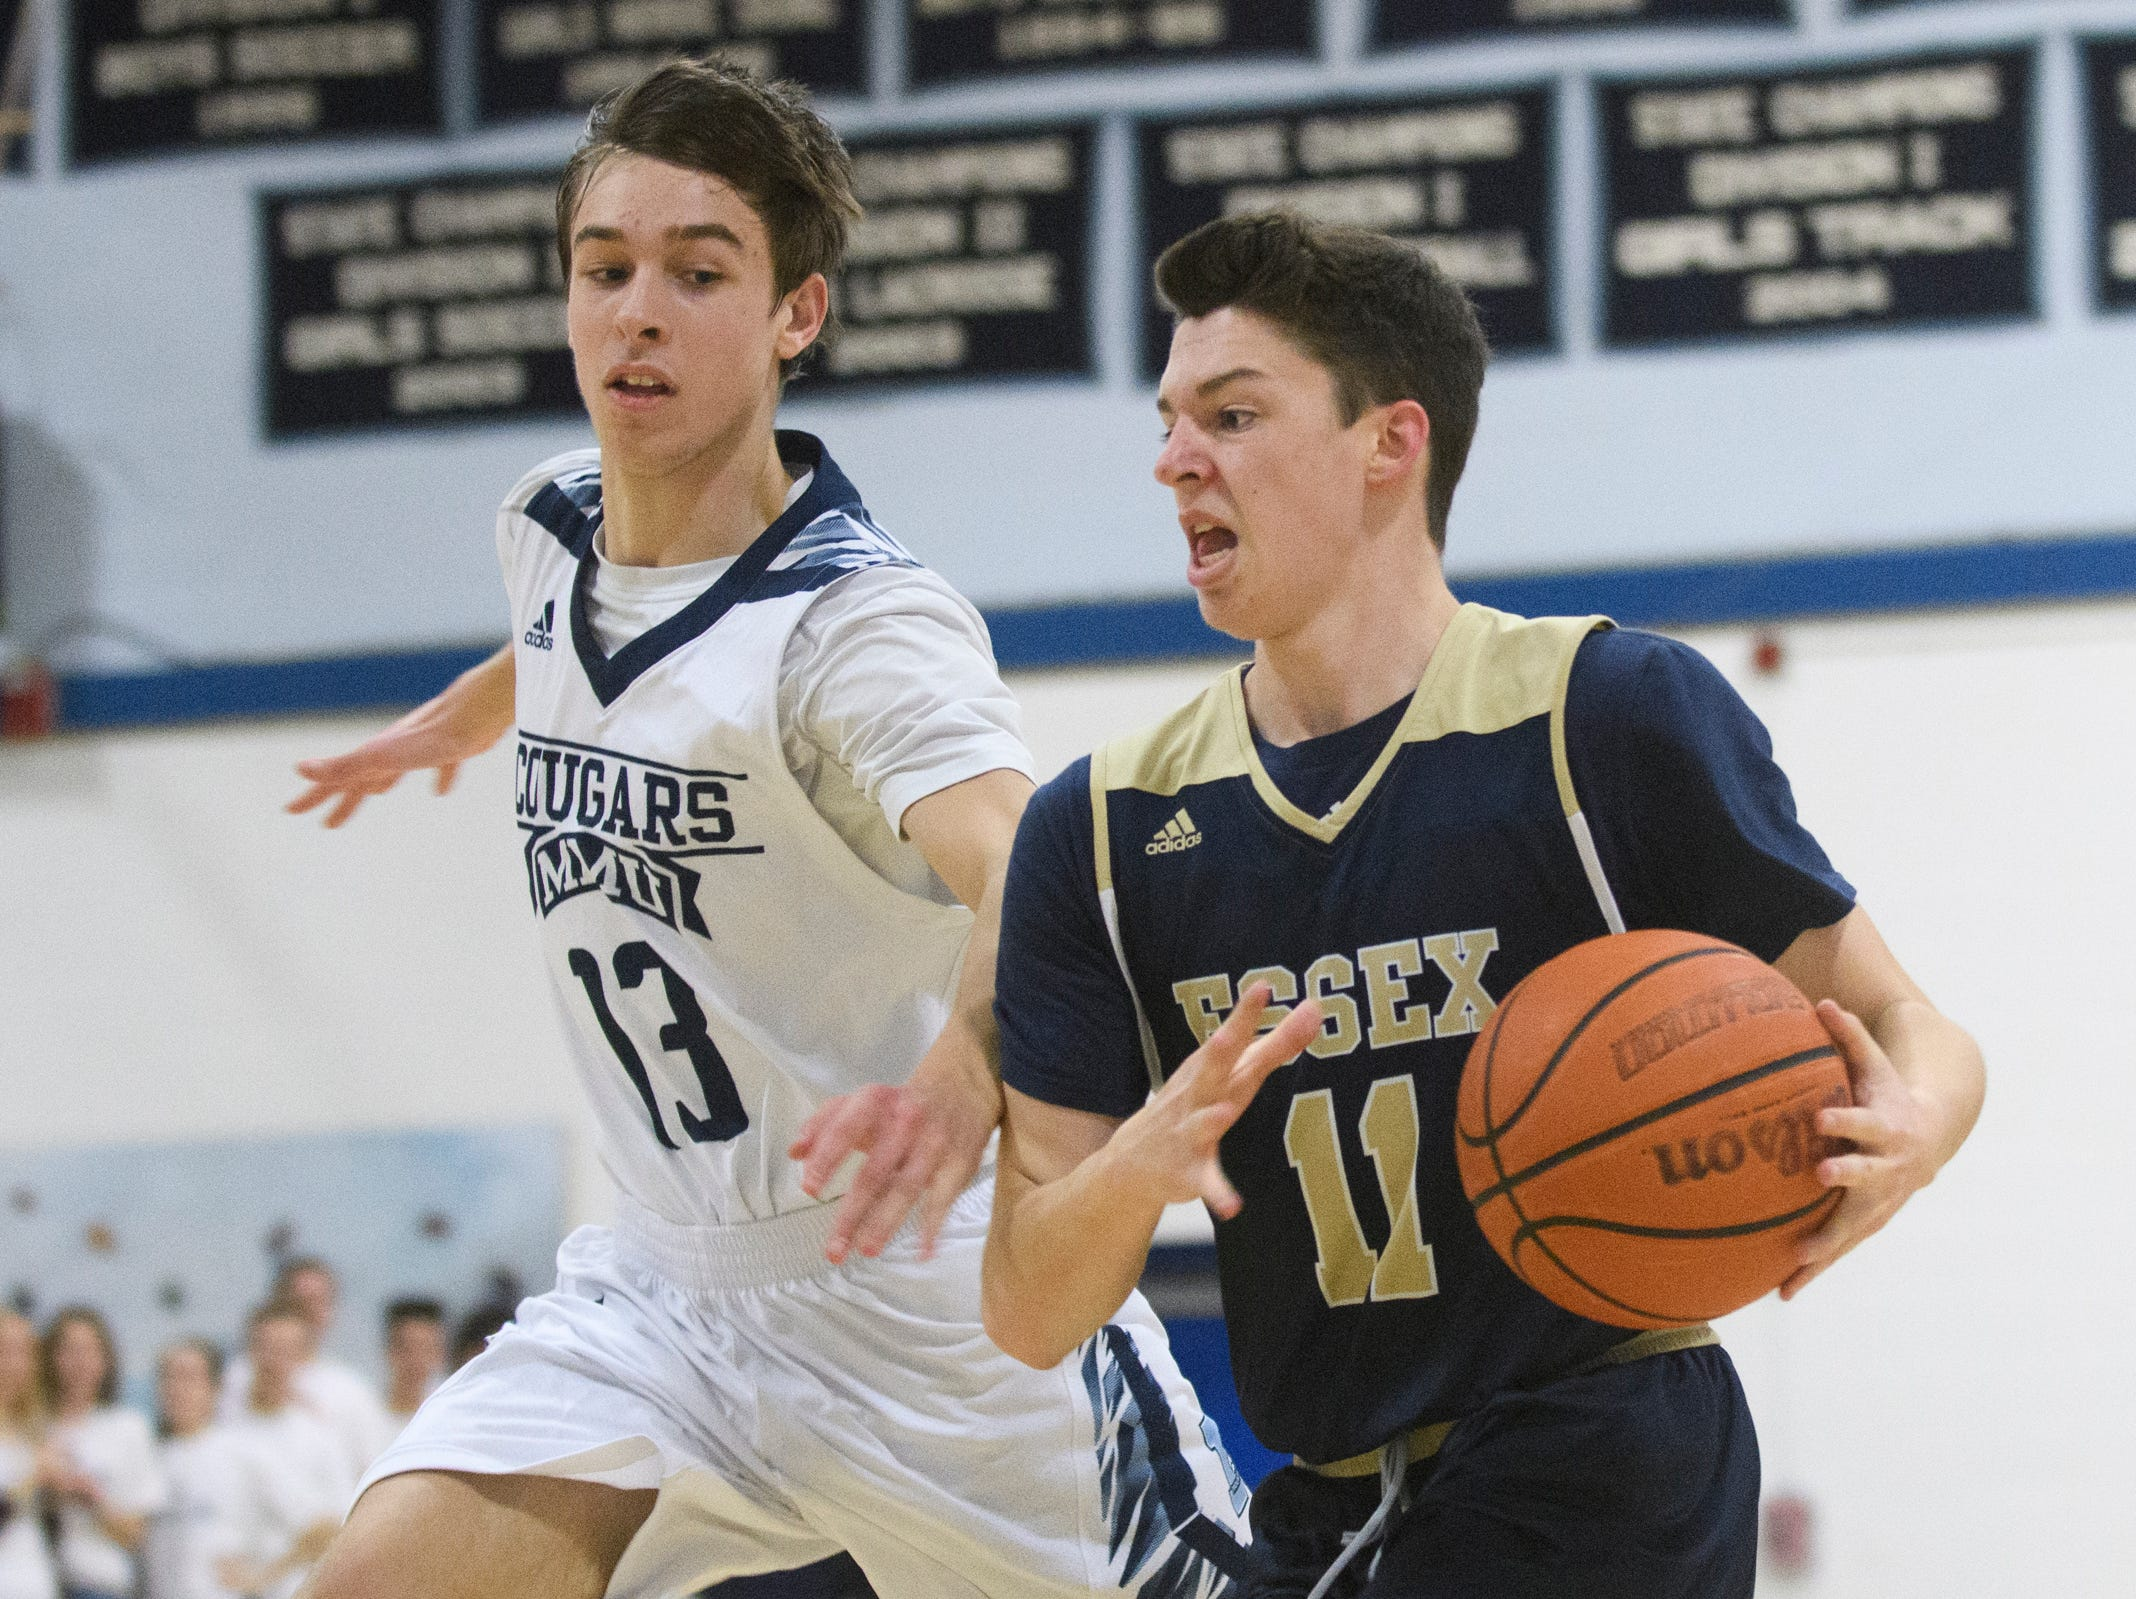 Essex's Parker Whitney (11) drives to the hoop past MMU's Becket Hill (13) during the boys basketball game between the Essex Hornets and the Mount Mansfield Cougars at MMU High School on Wednesday night February 13, 2019 in Jericho, Vermont.